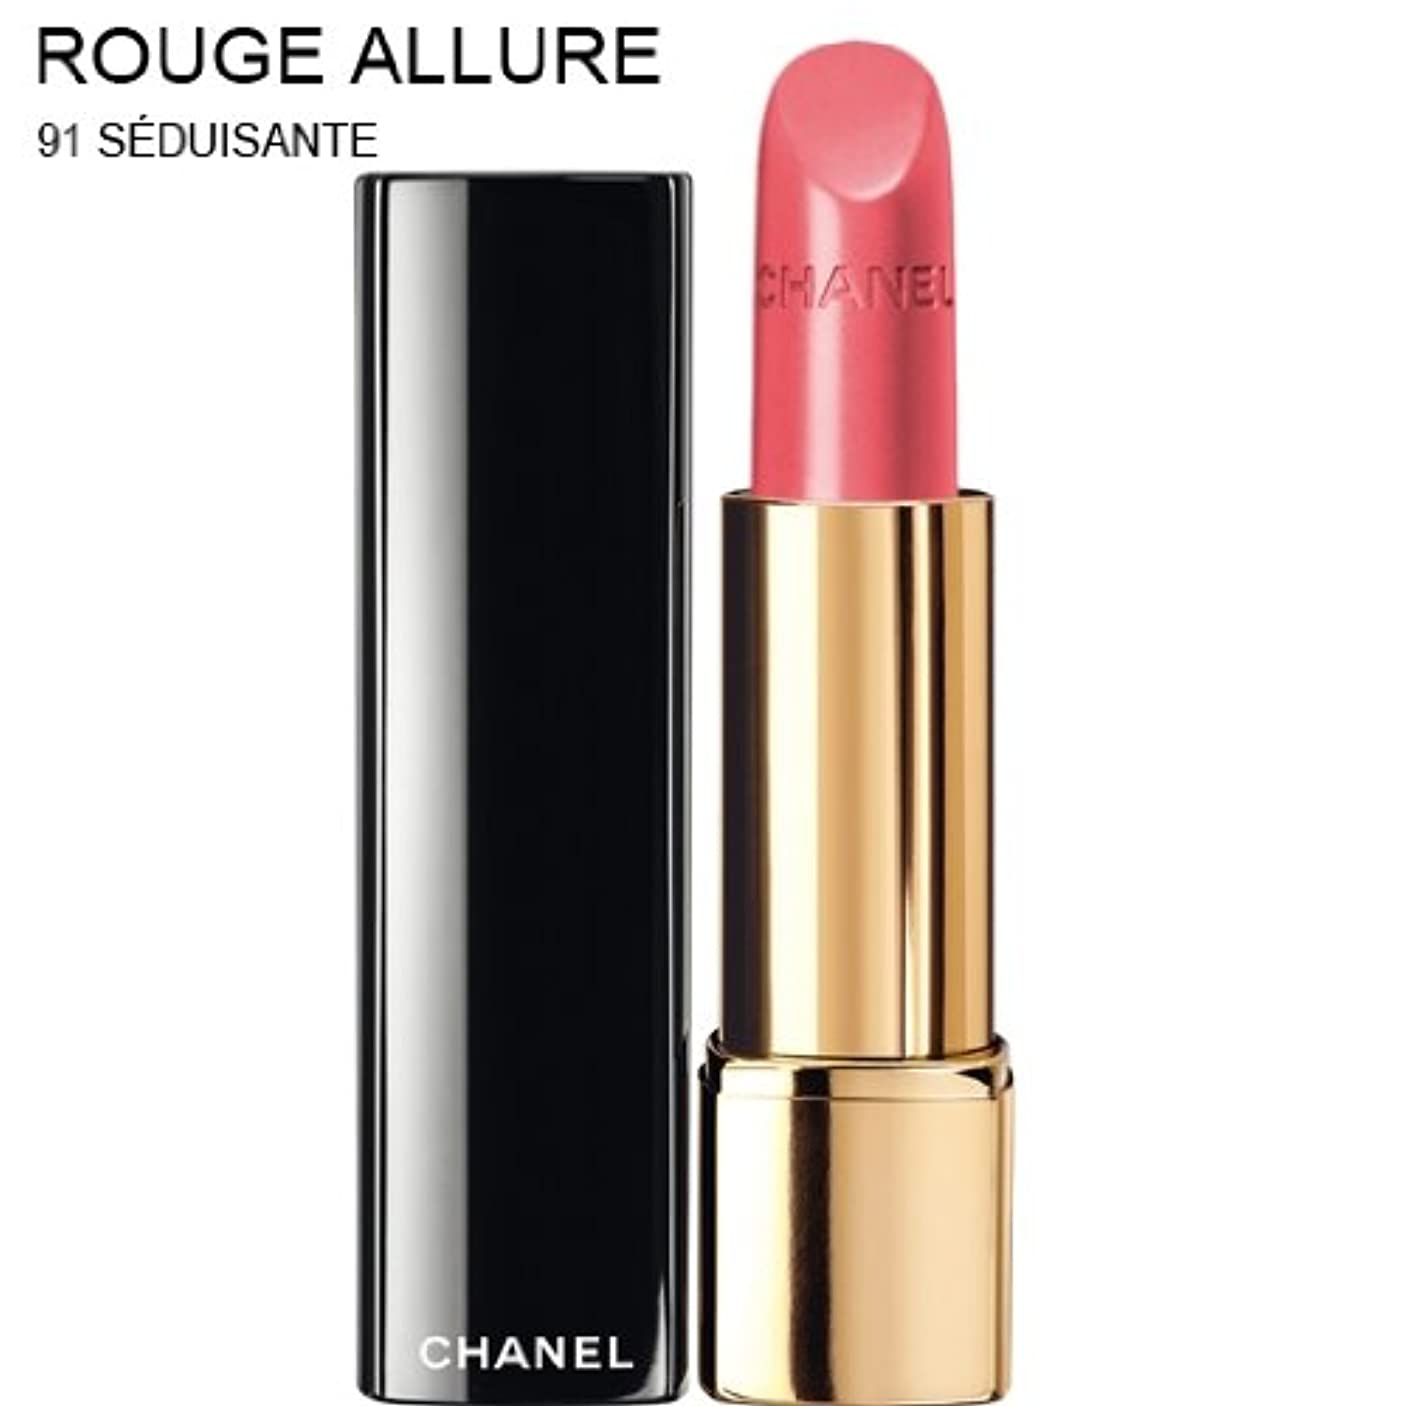 昇るコスチューム悲惨CHANEL ROUGE ALLURE INTENSE LONG-WEAR LIP COLOUR [並行輸入品] (91 SEDUISANTE)